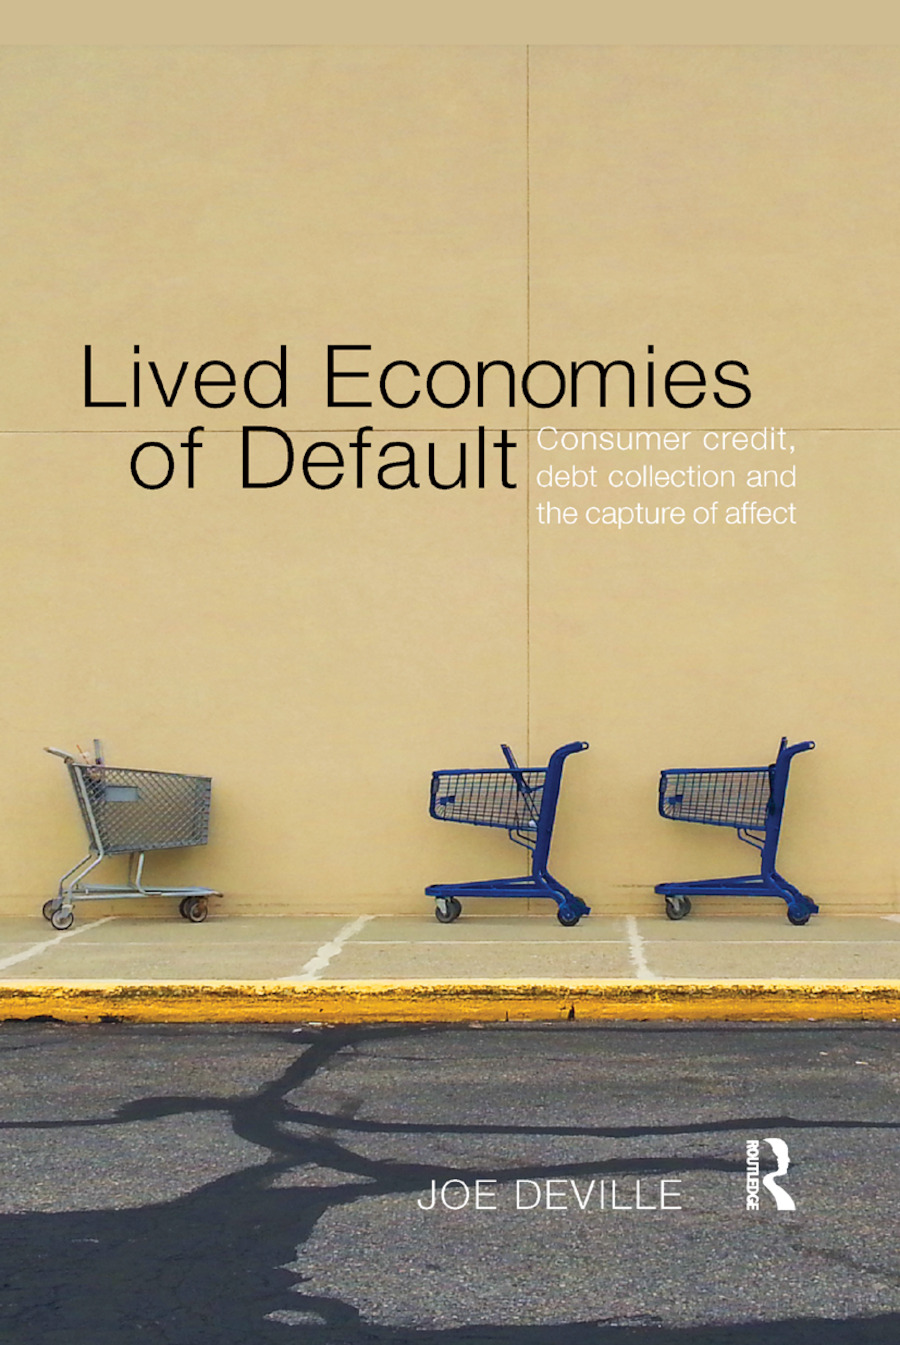 Lived Economies of Default: Consumer Credit, Debt Collection and the Capture of Affect book cover